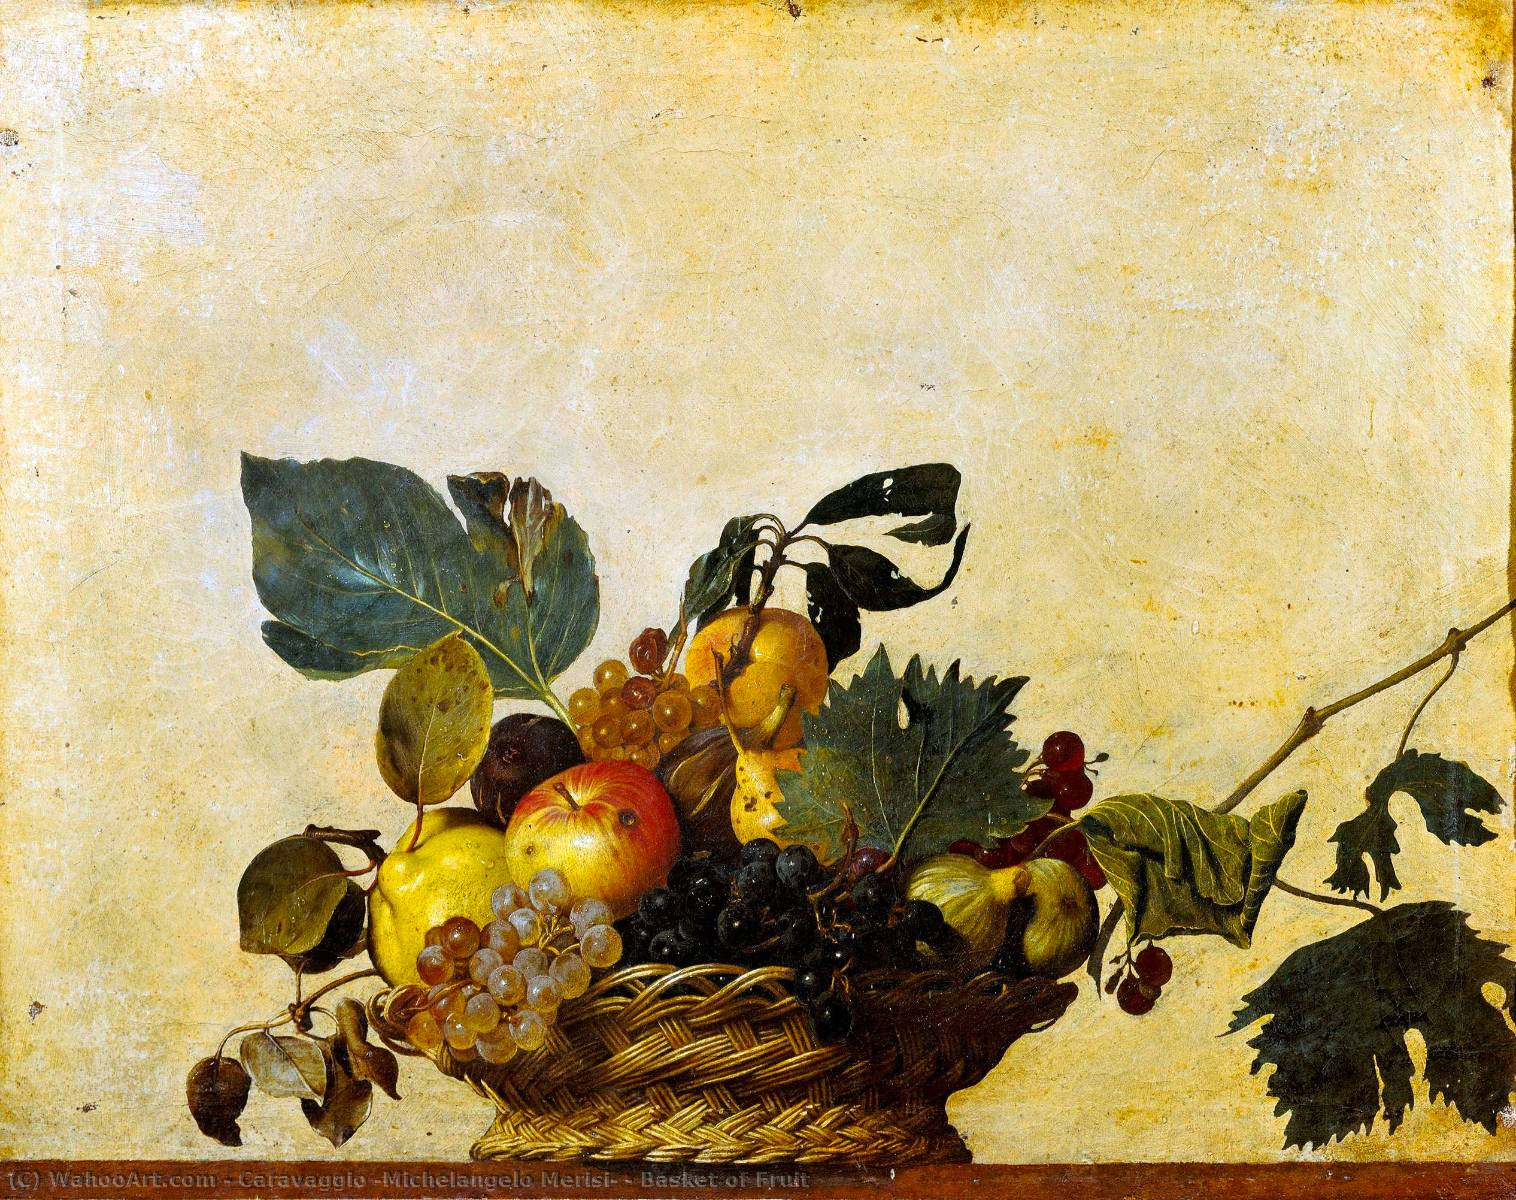 Basket of Fruit, 1596 by Caravaggio (Michelangelo Merisi) (1571-1610, Spain) | Paintings Reproductions Caravaggio (Michelangelo Merisi) | WahooArt.com